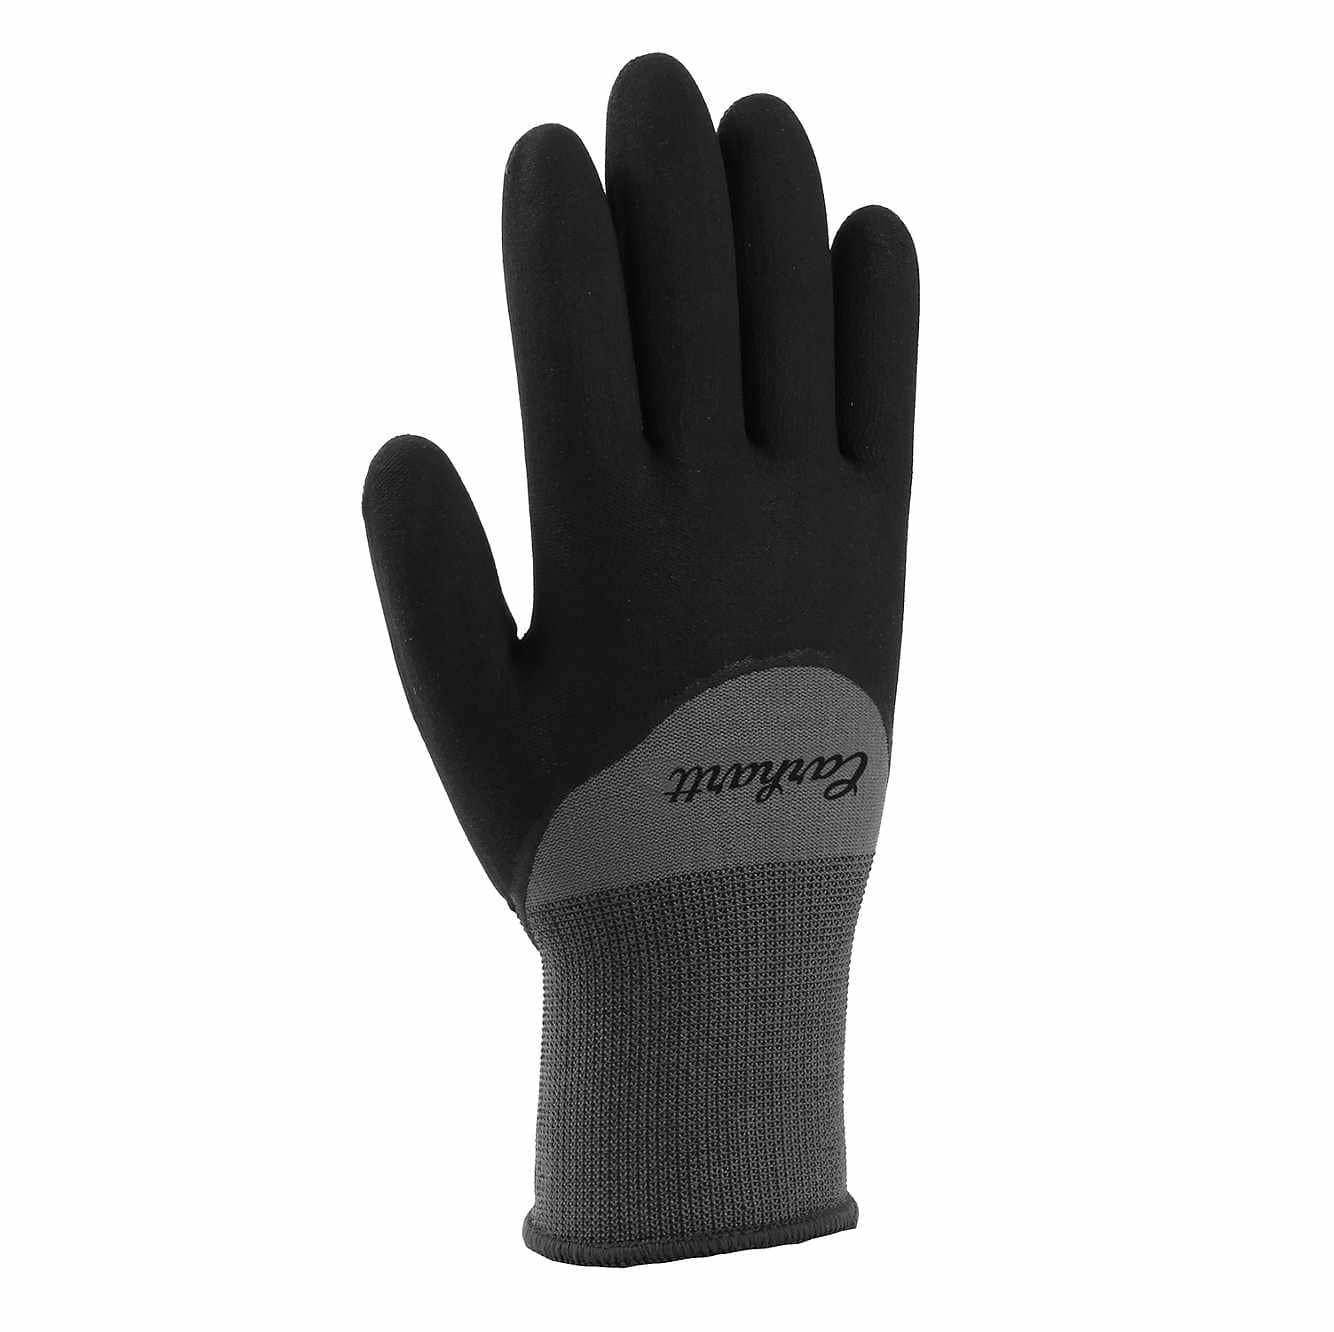 Picture of Thermal Full-Coverage Nitrile Grip Glove in Gray